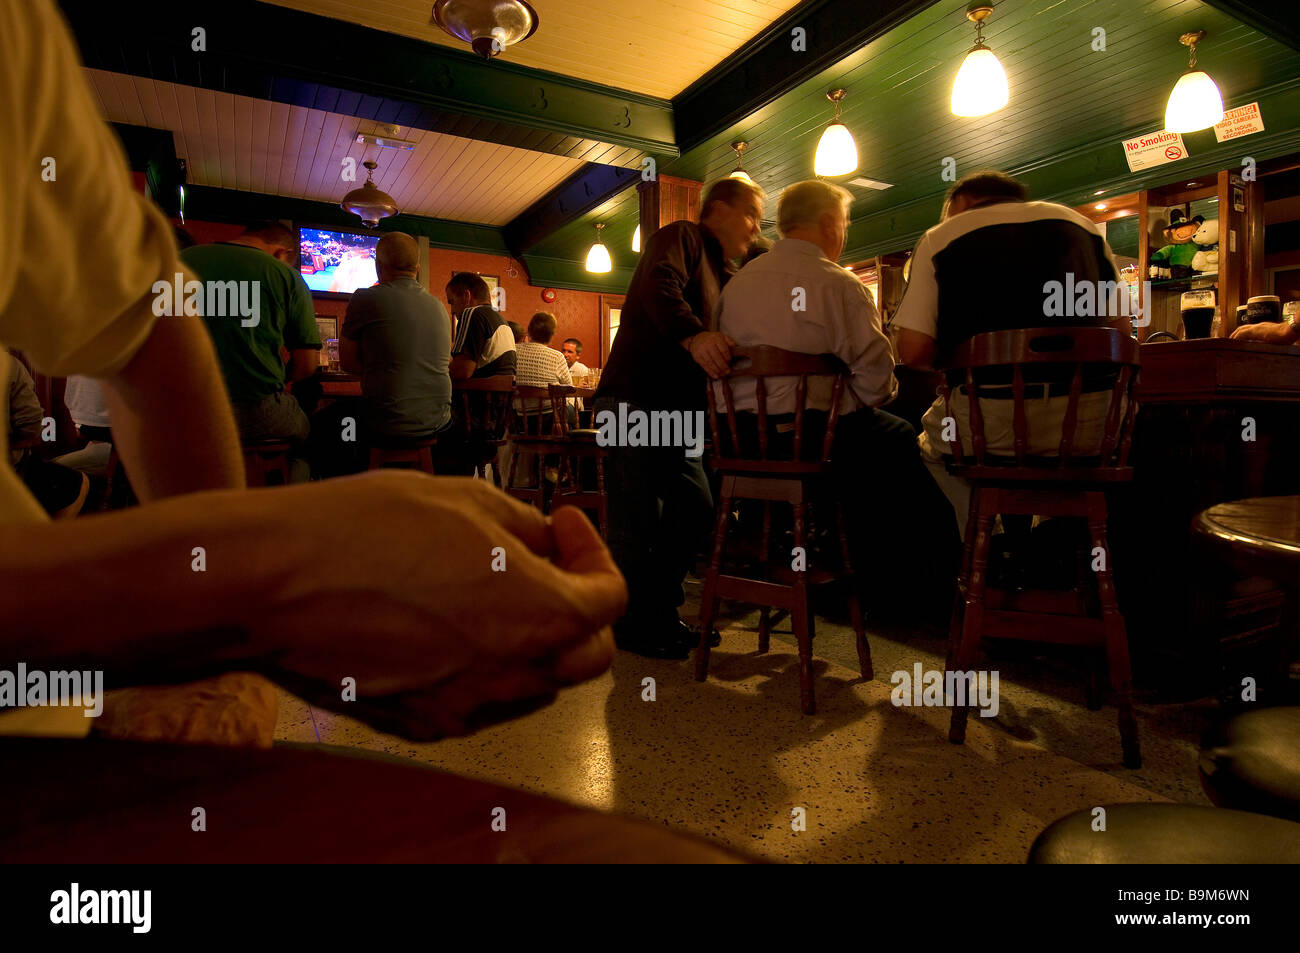 Ireland, County Kildare, Maynooth, Pub the Brady 's - Stock Image